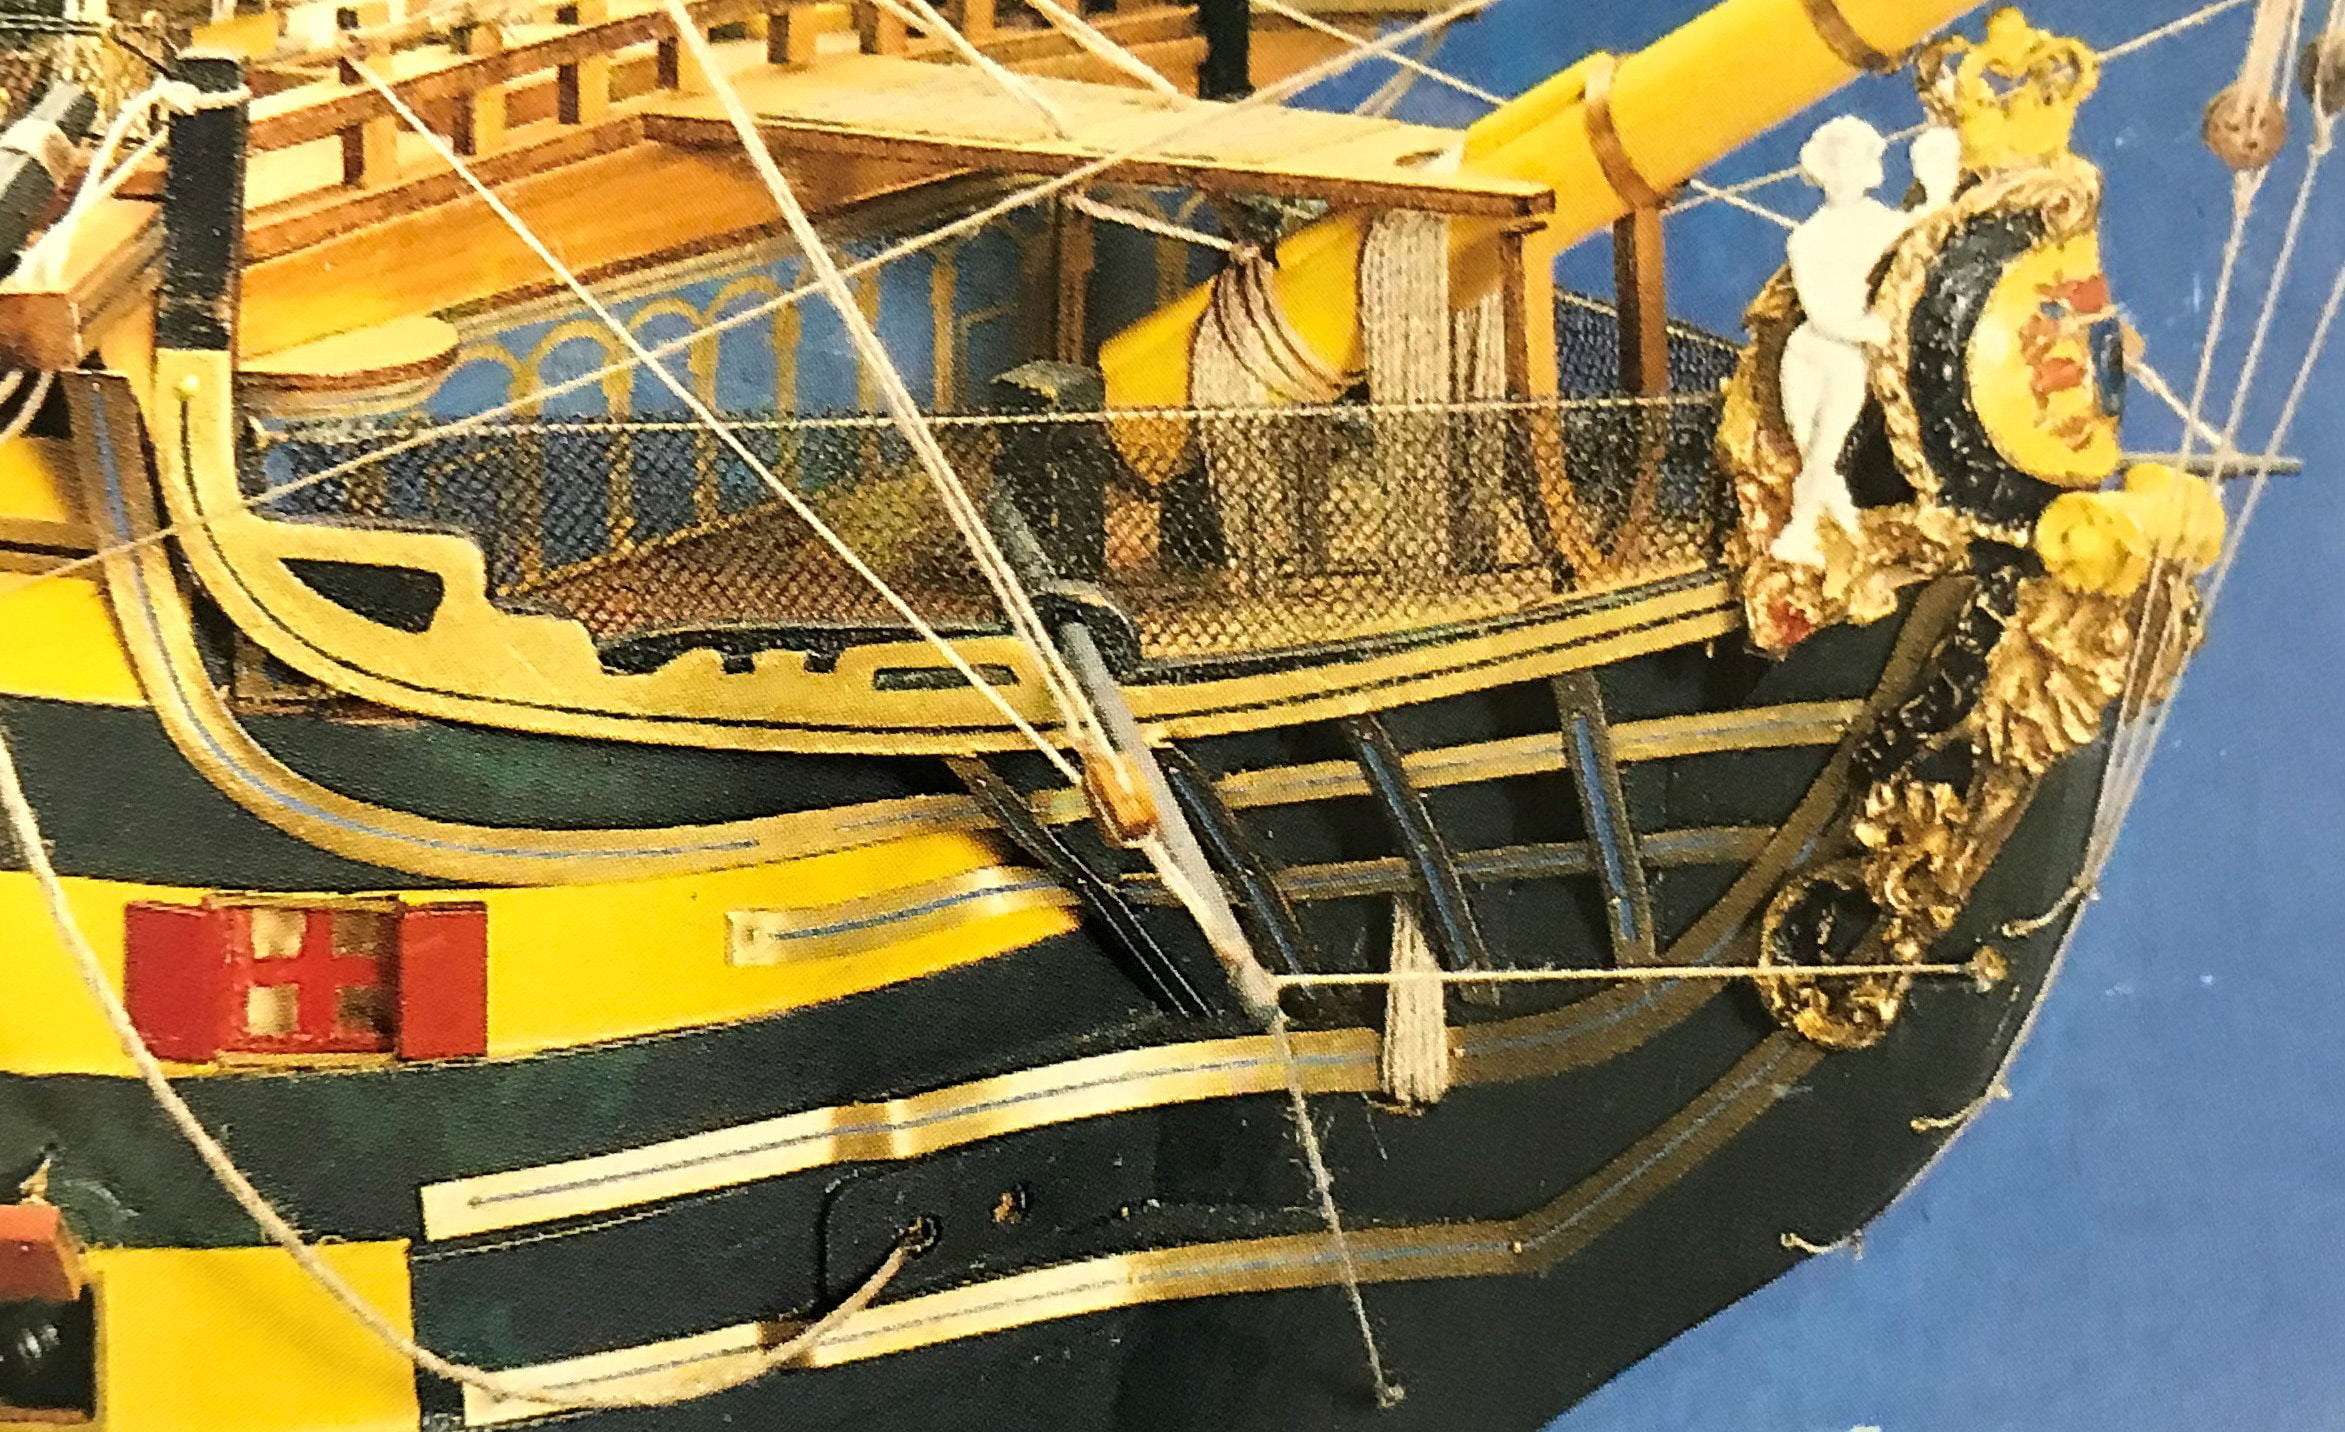 HMS Victory (High Spec) Model Boat Kit From Mantua   Hobbies